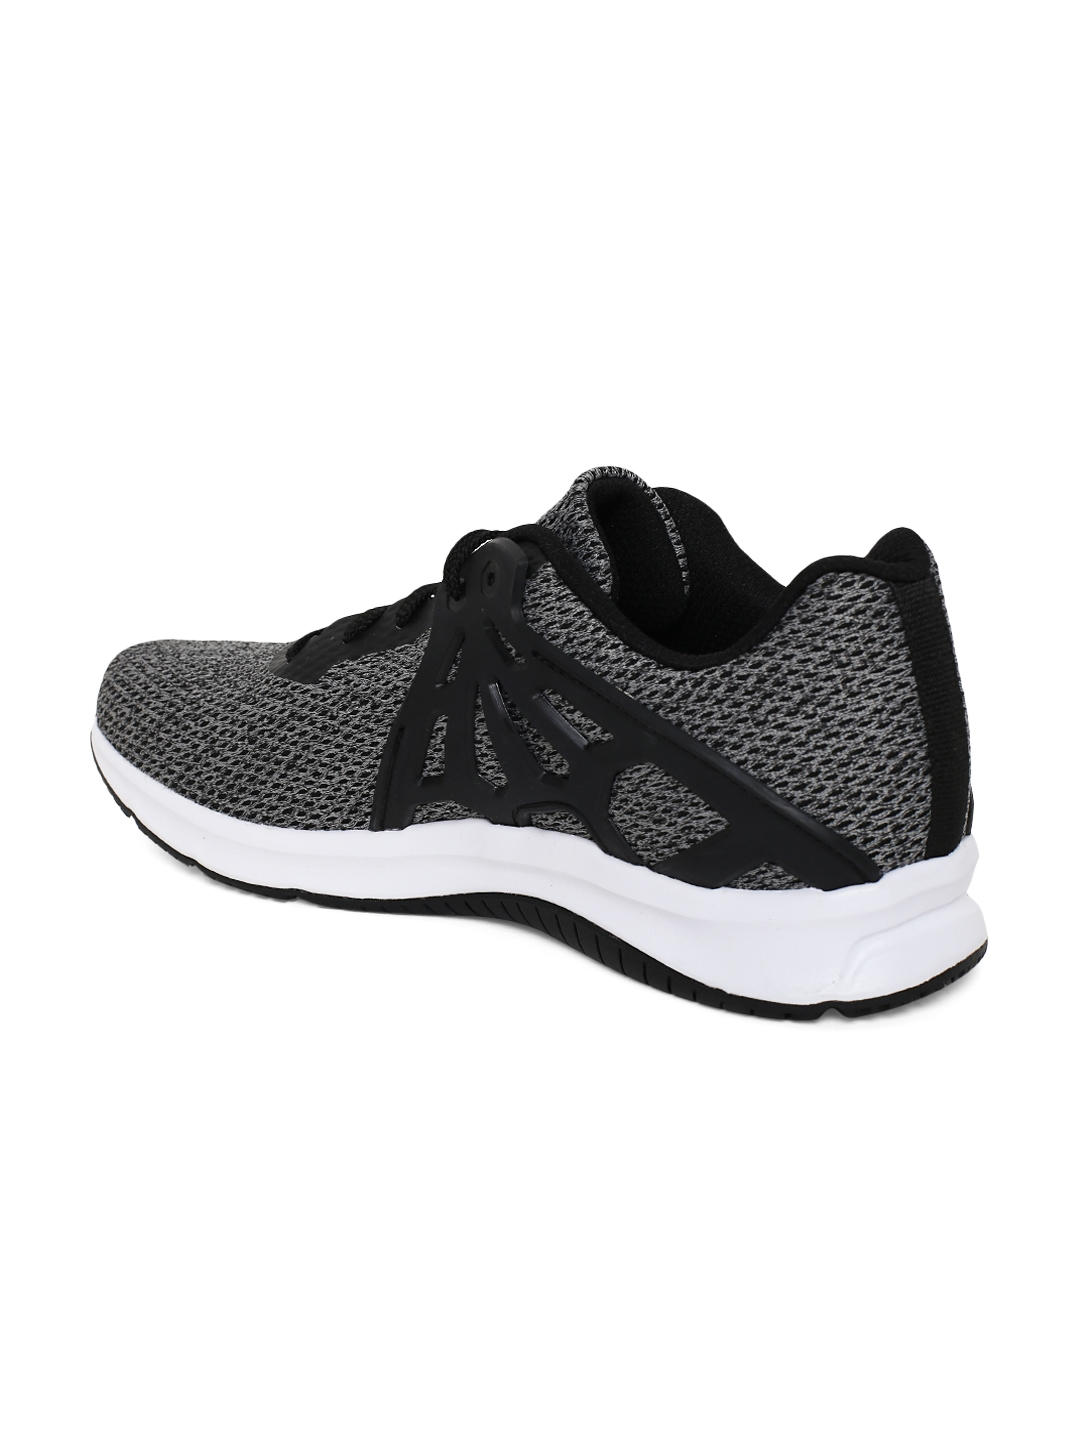 6a86ceb06 Buy Reebok Men Grey   Black Hex Lite Running Shoes - Sports Shoes ...